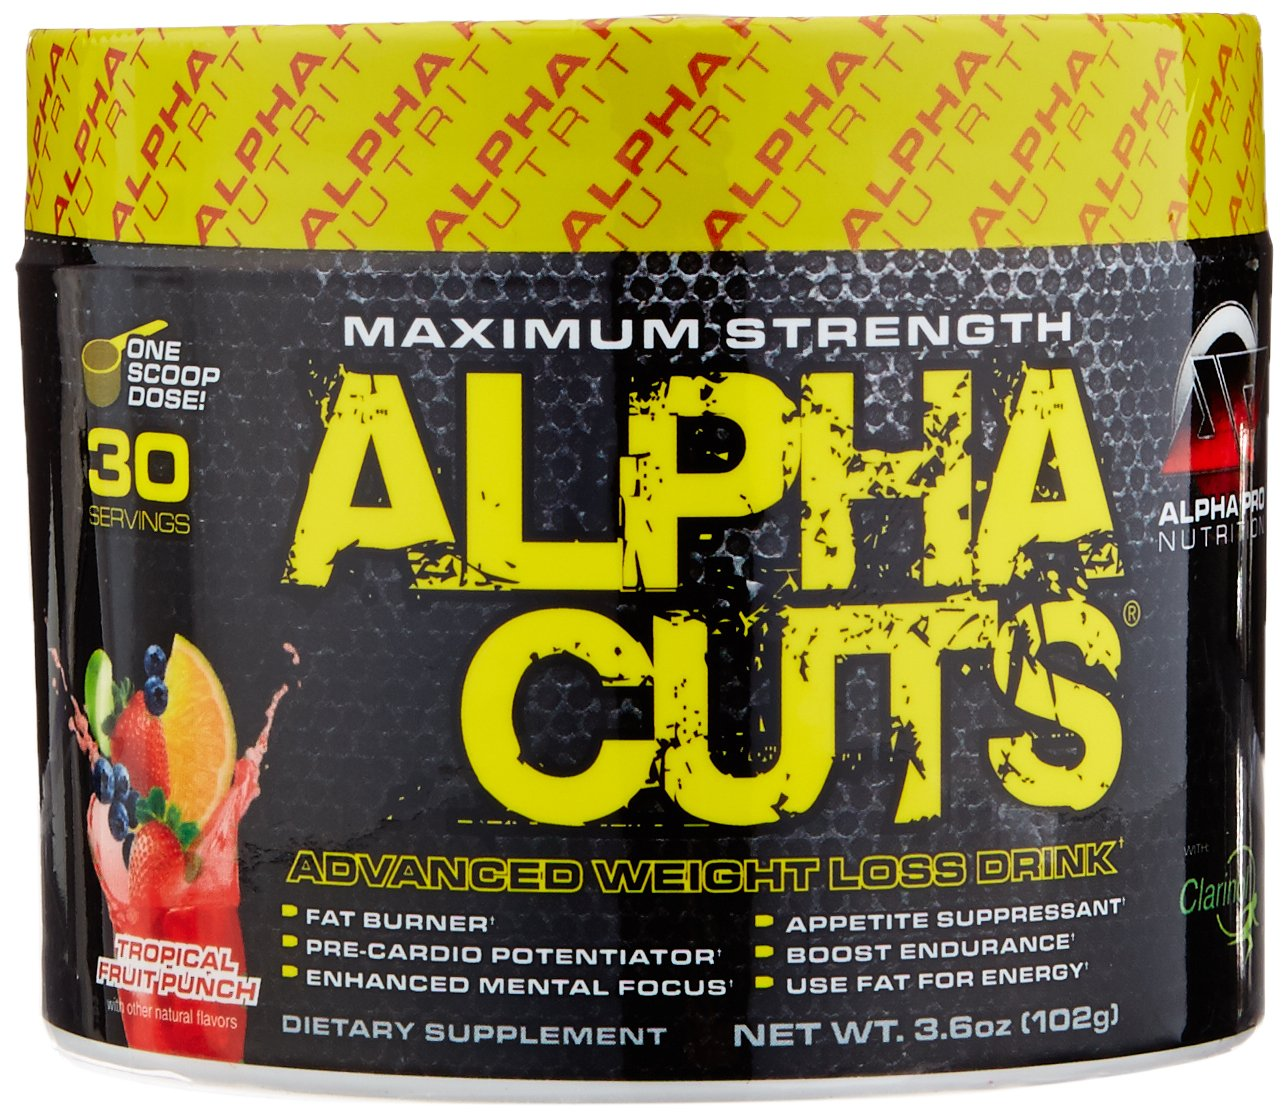 Alpha Pro Nutrition Cuts, Tropical Fruit Punch, 30 Servings